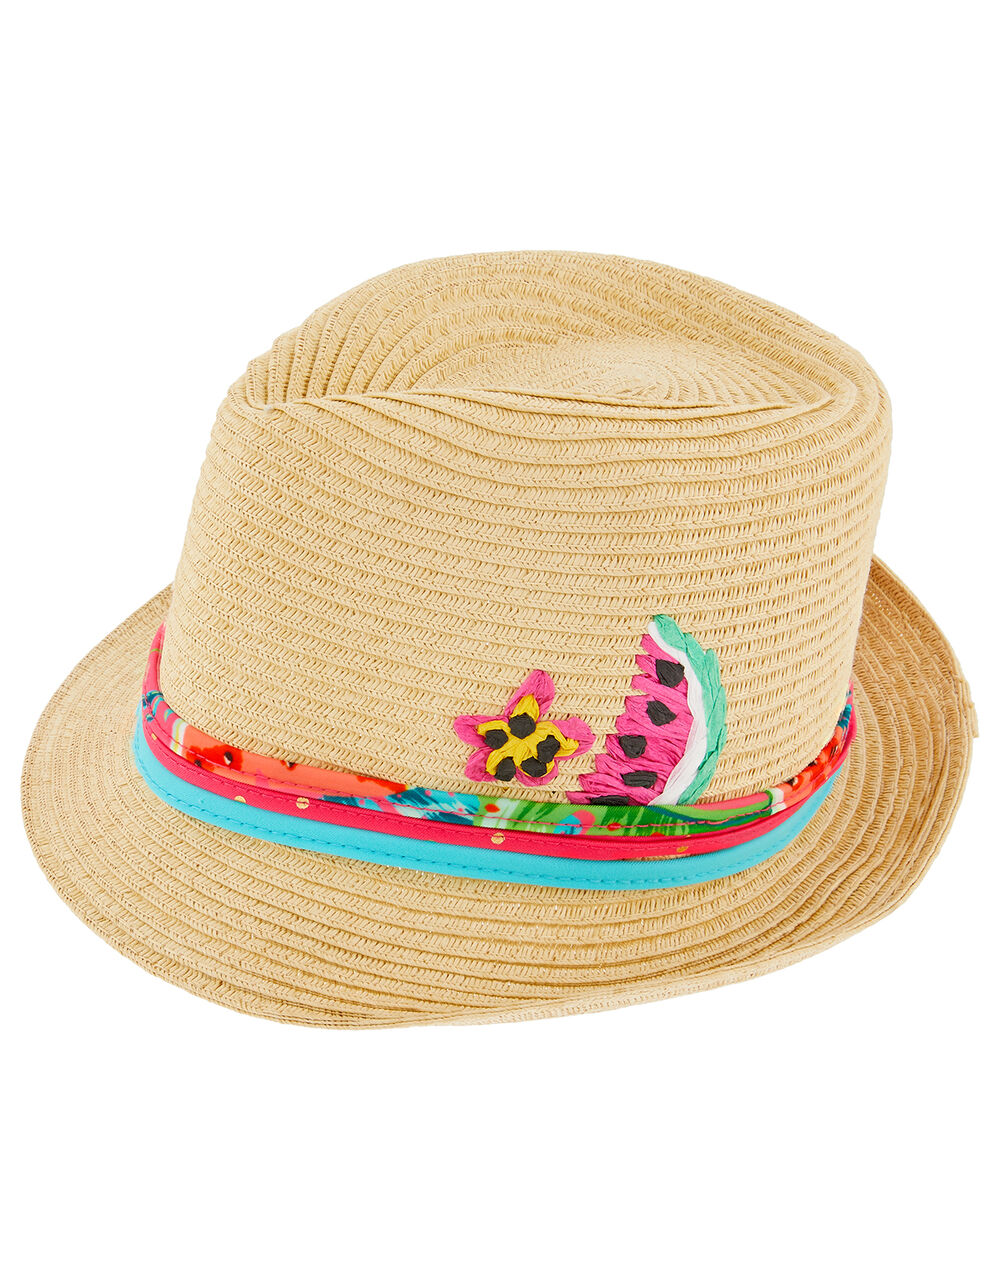 Lucy Watermelon Straw Hat with Removable Bando, Natural (NATURAL), large